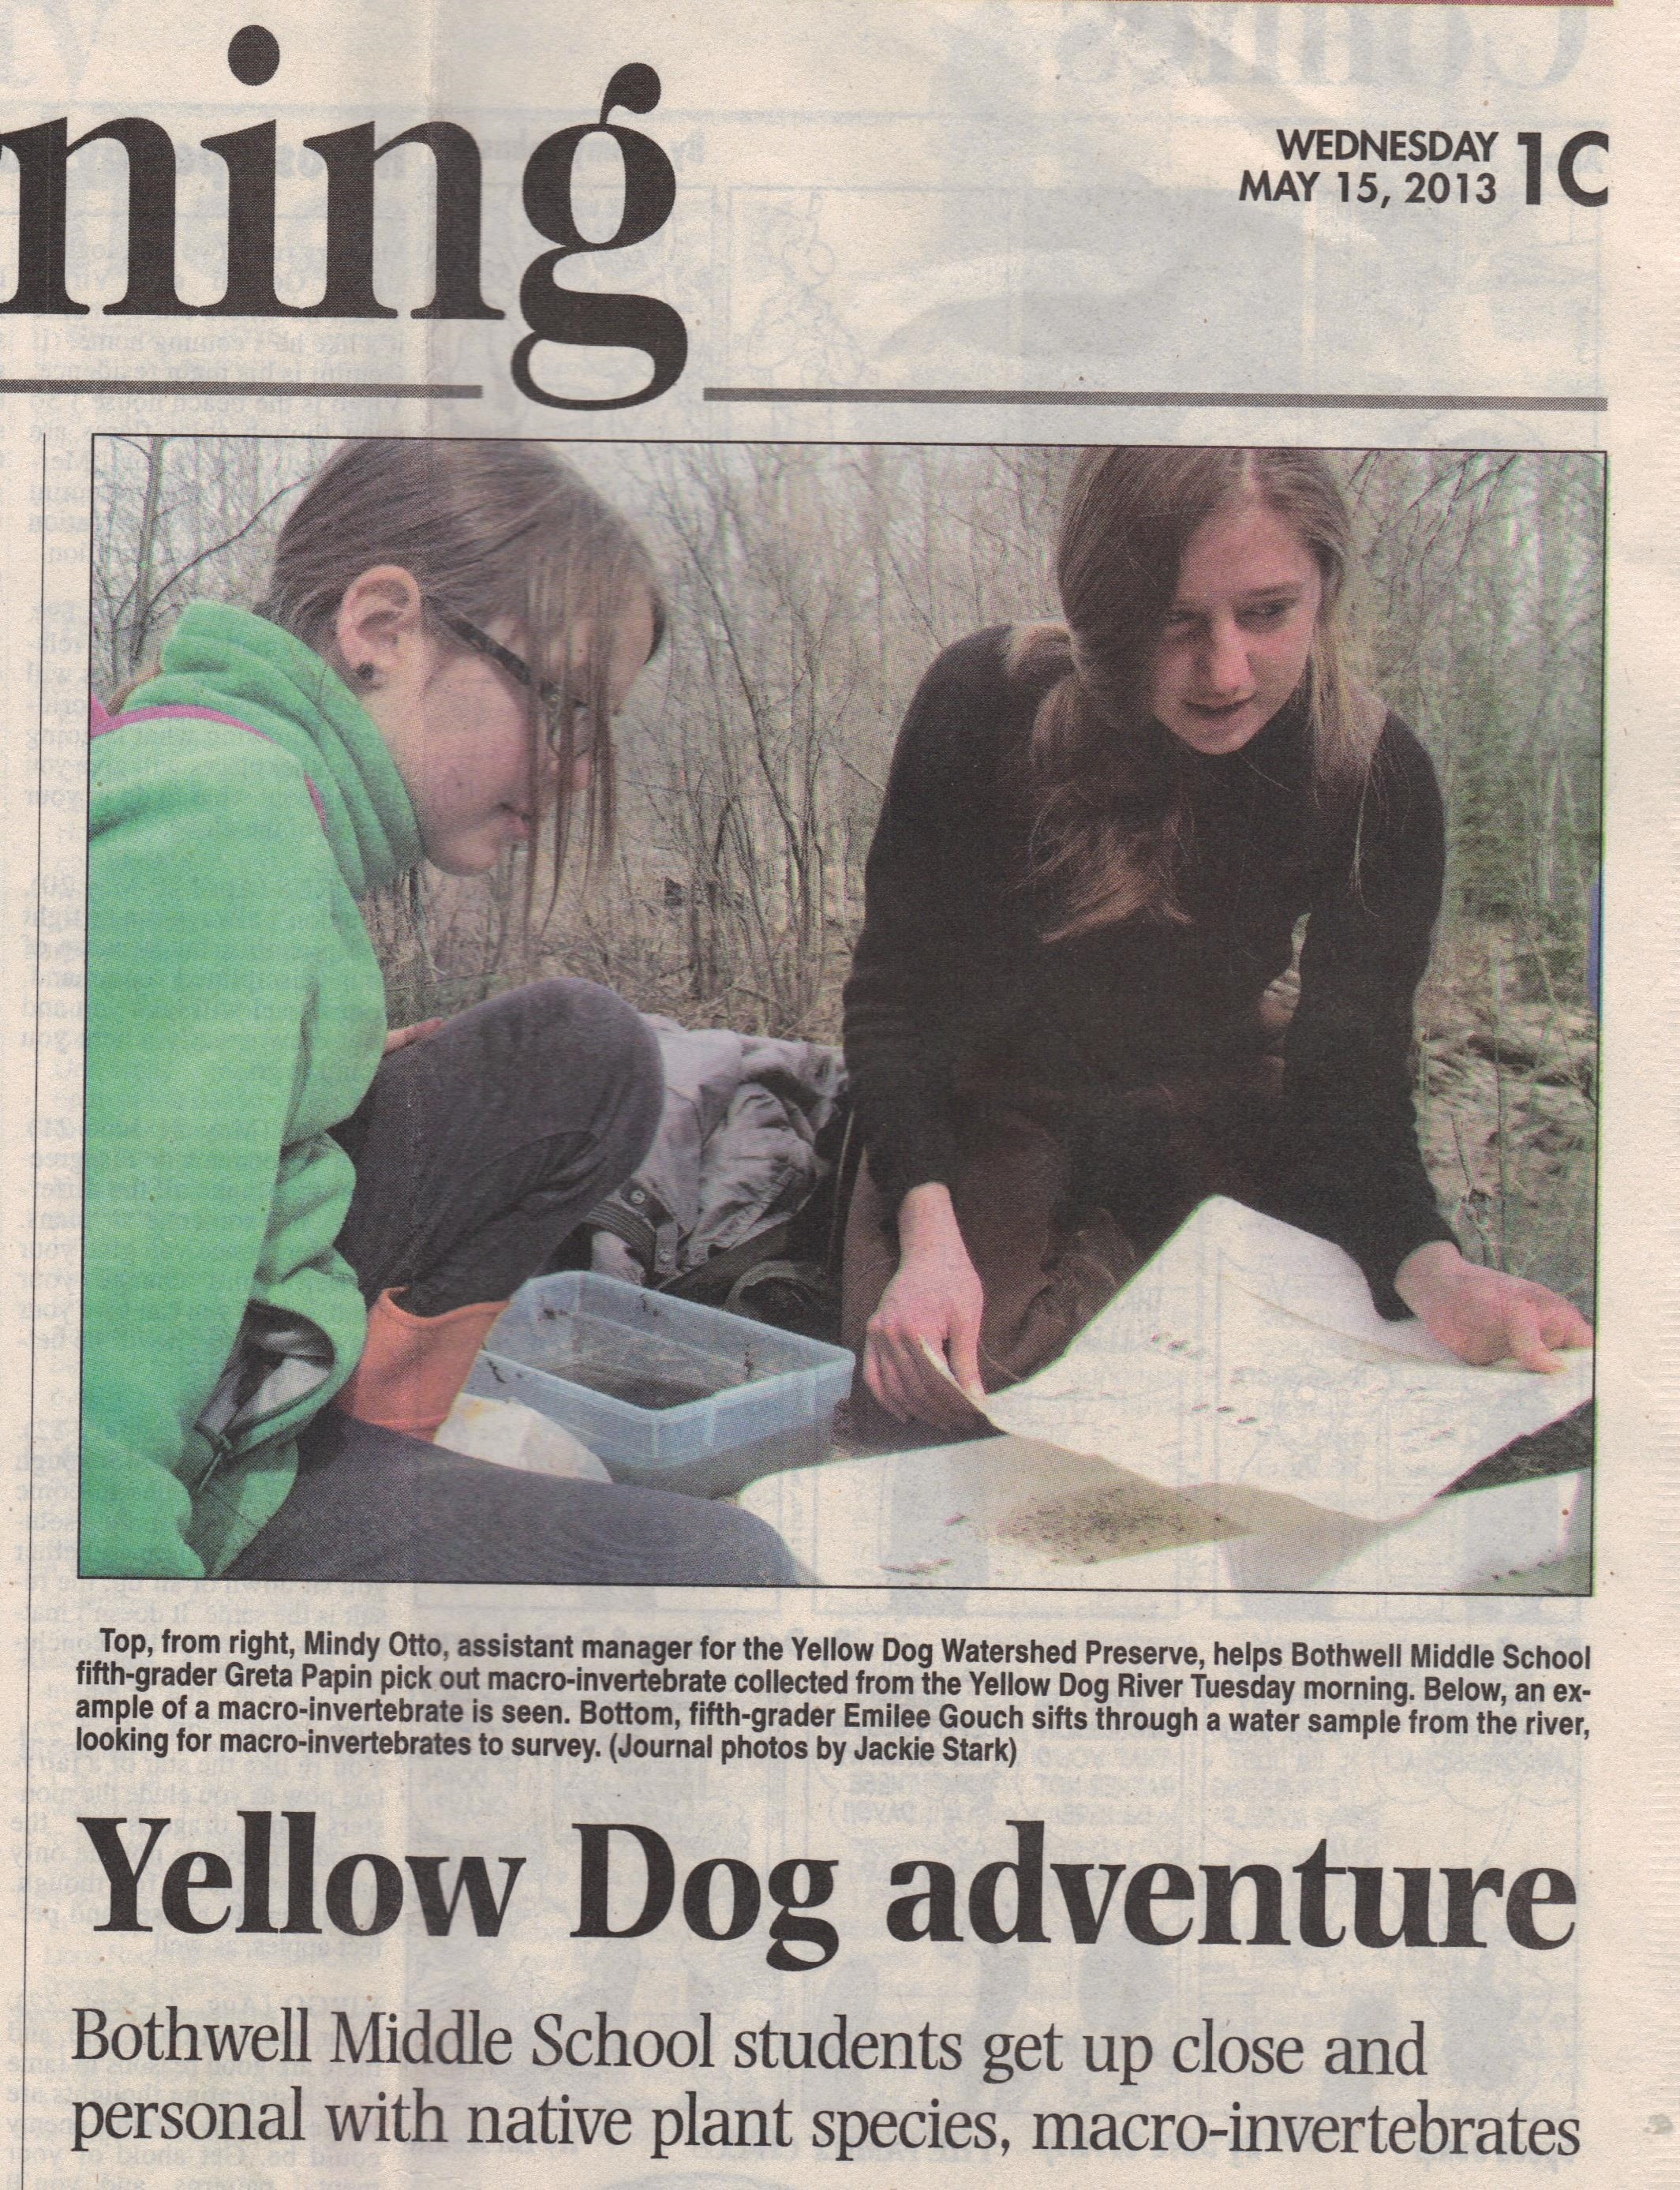 Bothwell Middle School learns about macroinvertebrates at the Yellow Dog River